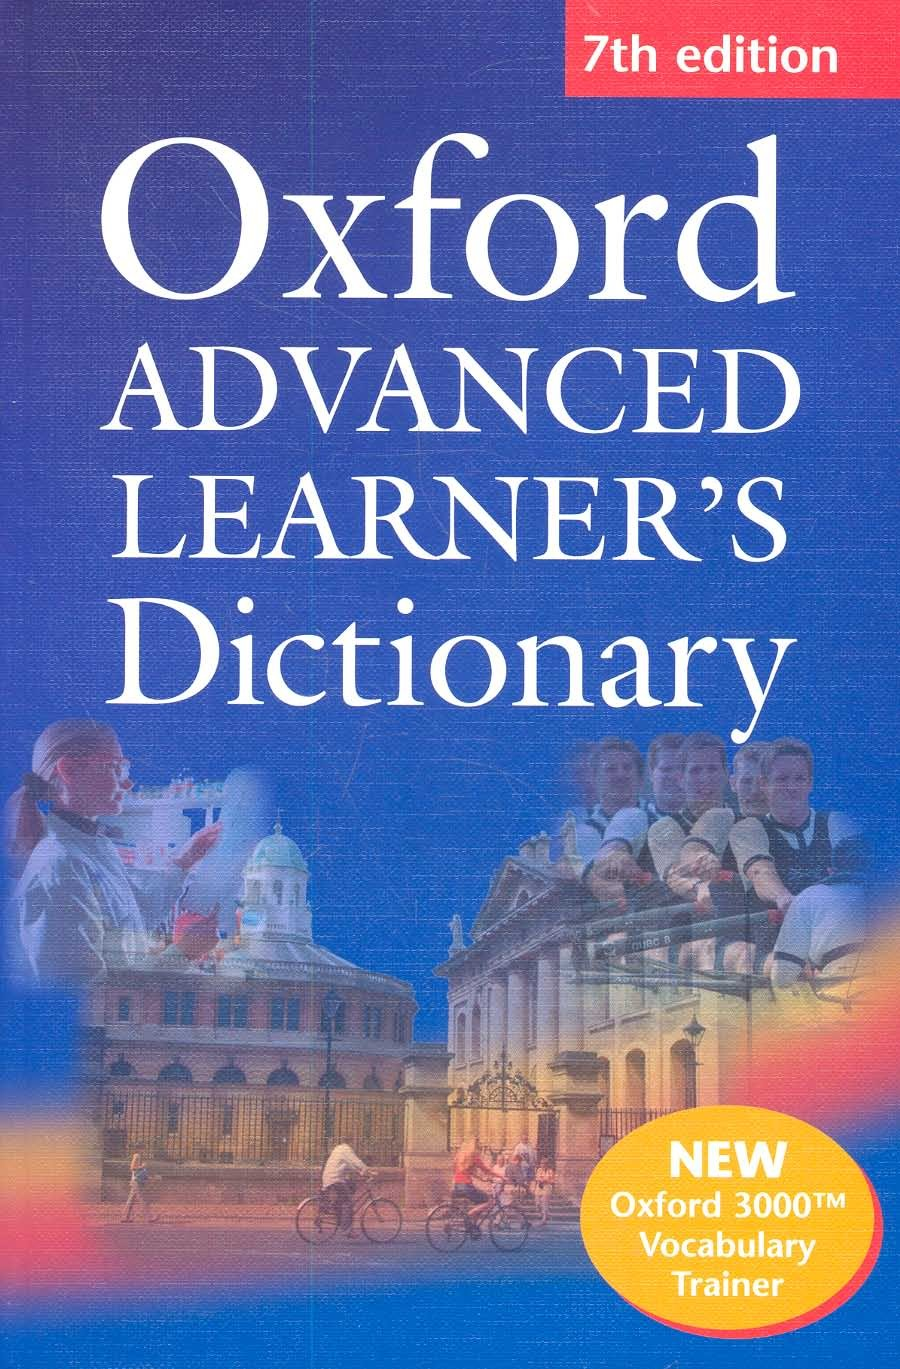 Oxford advanced learner dictionary 7th edition 1.6 download